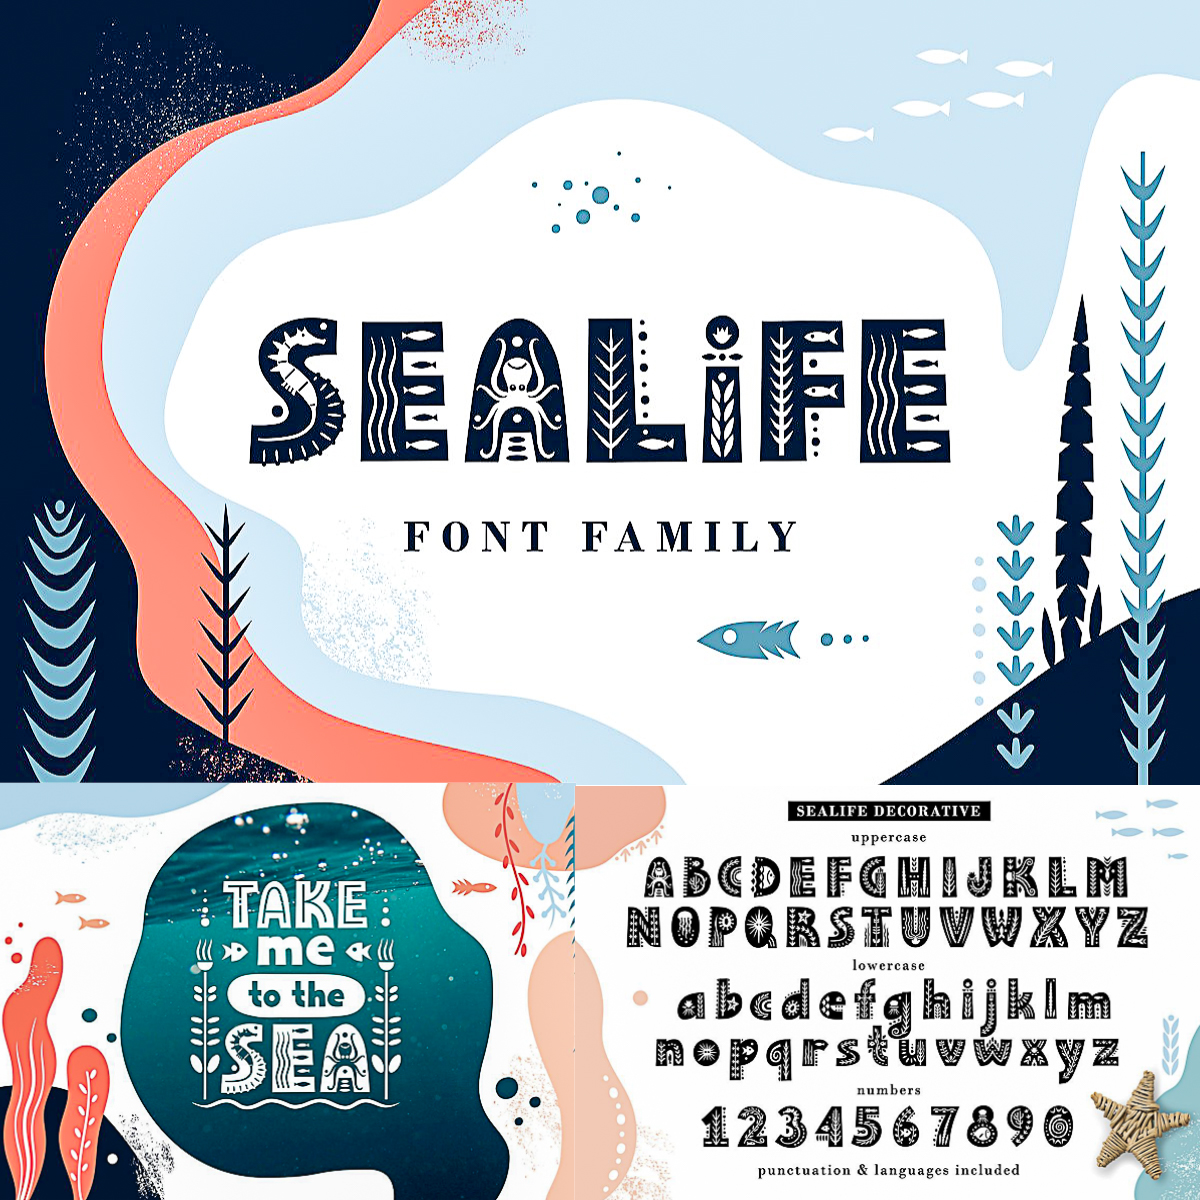 Sealife Font Family | Free download